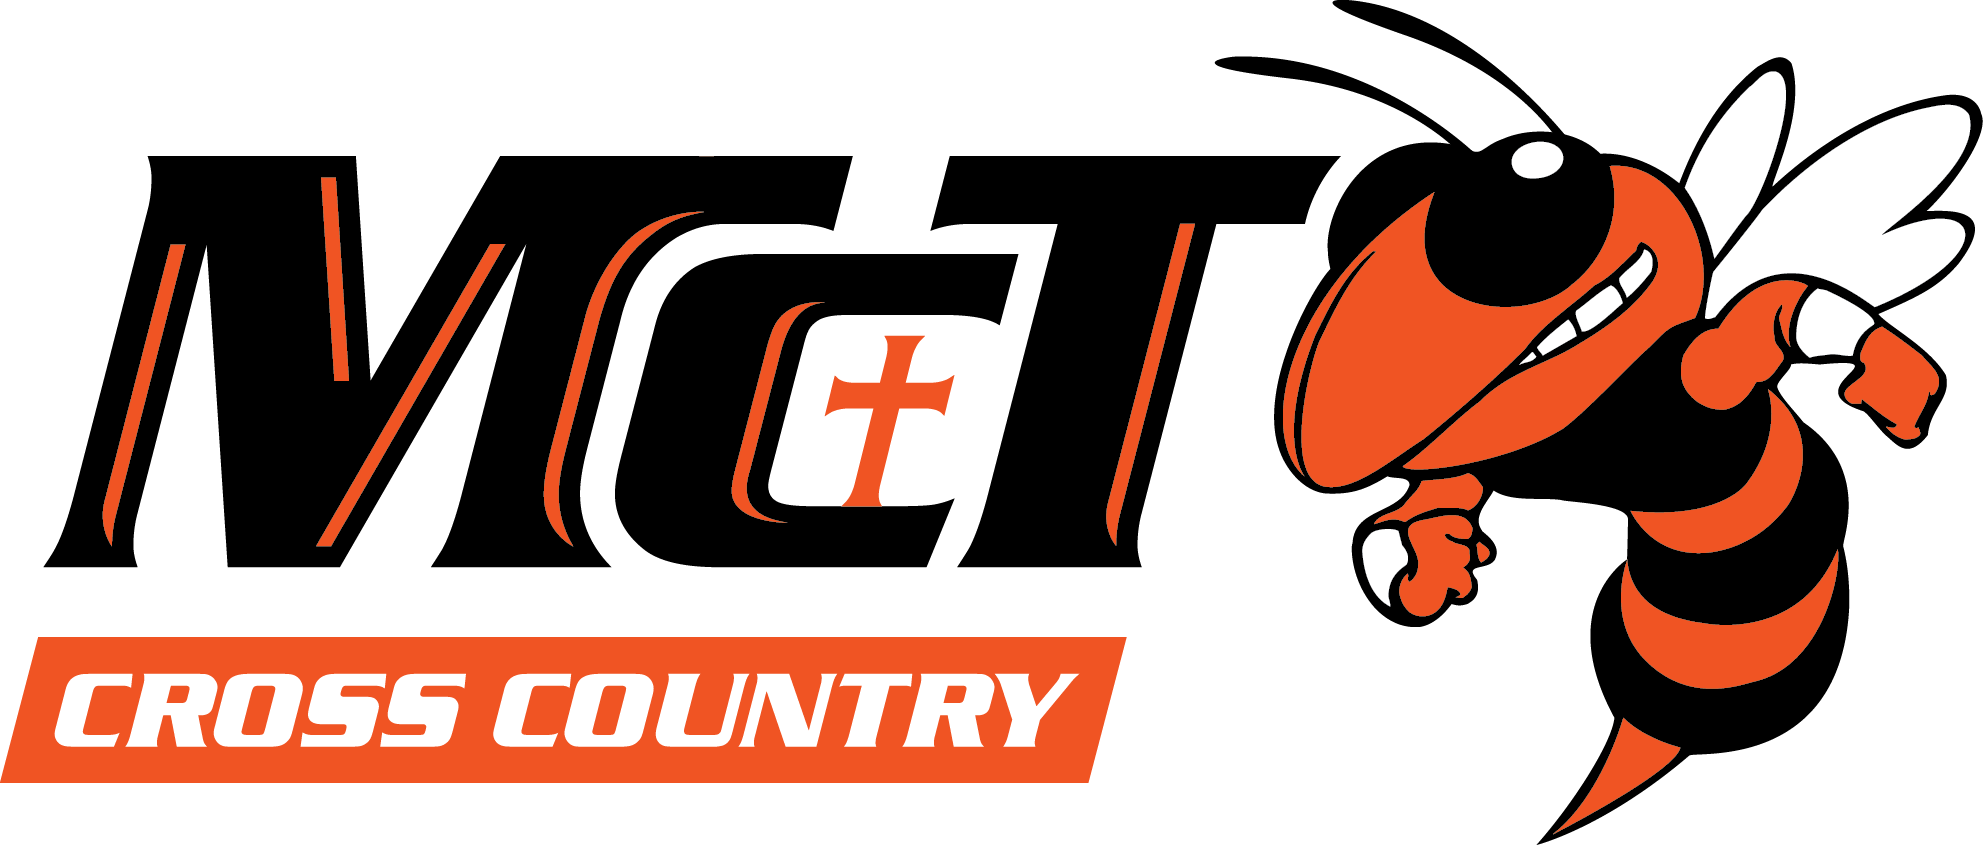 Hoover cross country vikings clipart clipart Cross Country Home – Cross Country – McGill-Toolen Catholic High School clipart